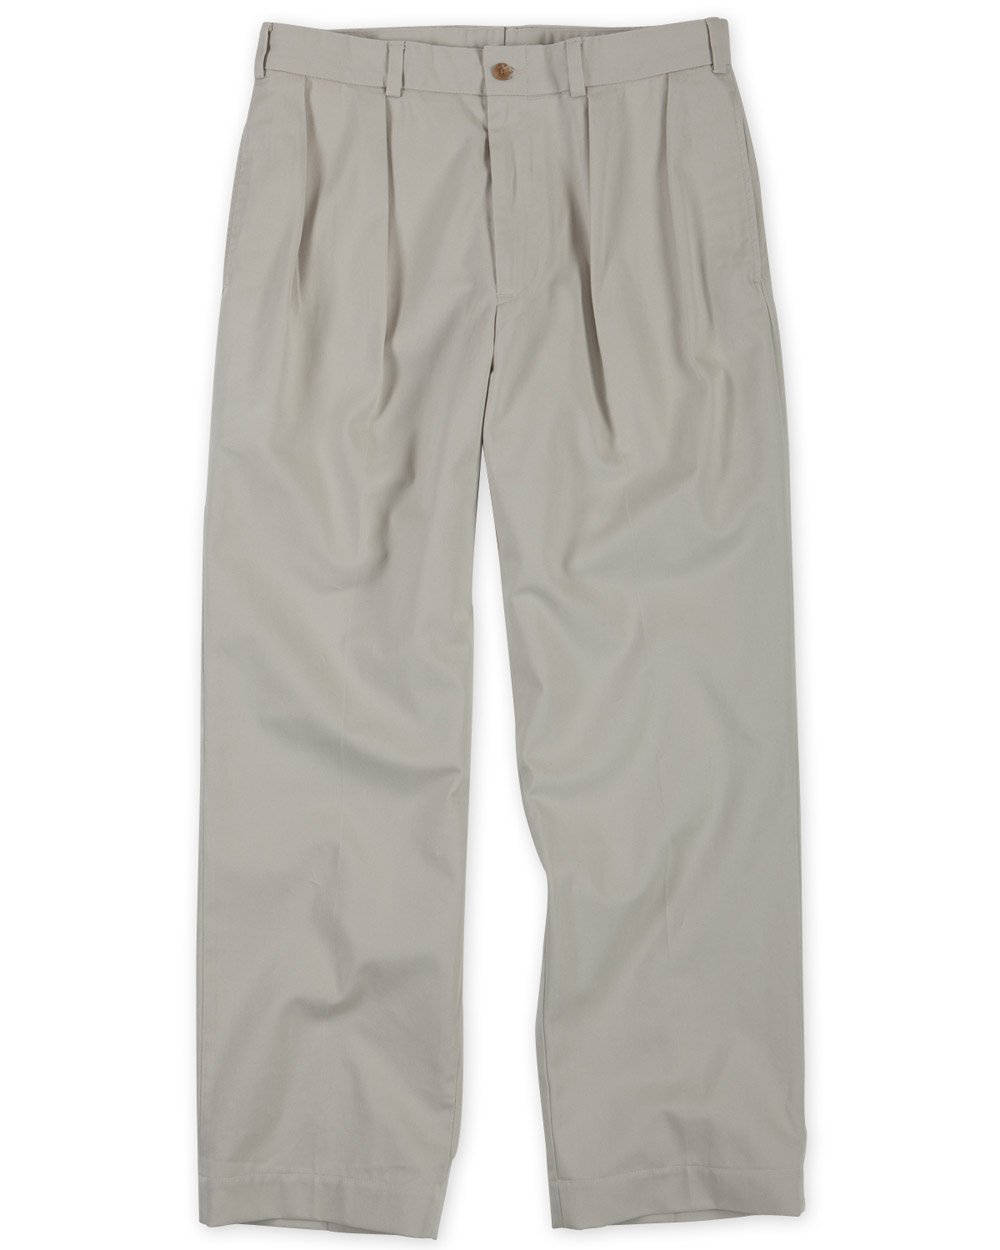 Bill's Khakis M1 Pleated (38-Pleated, Cement)